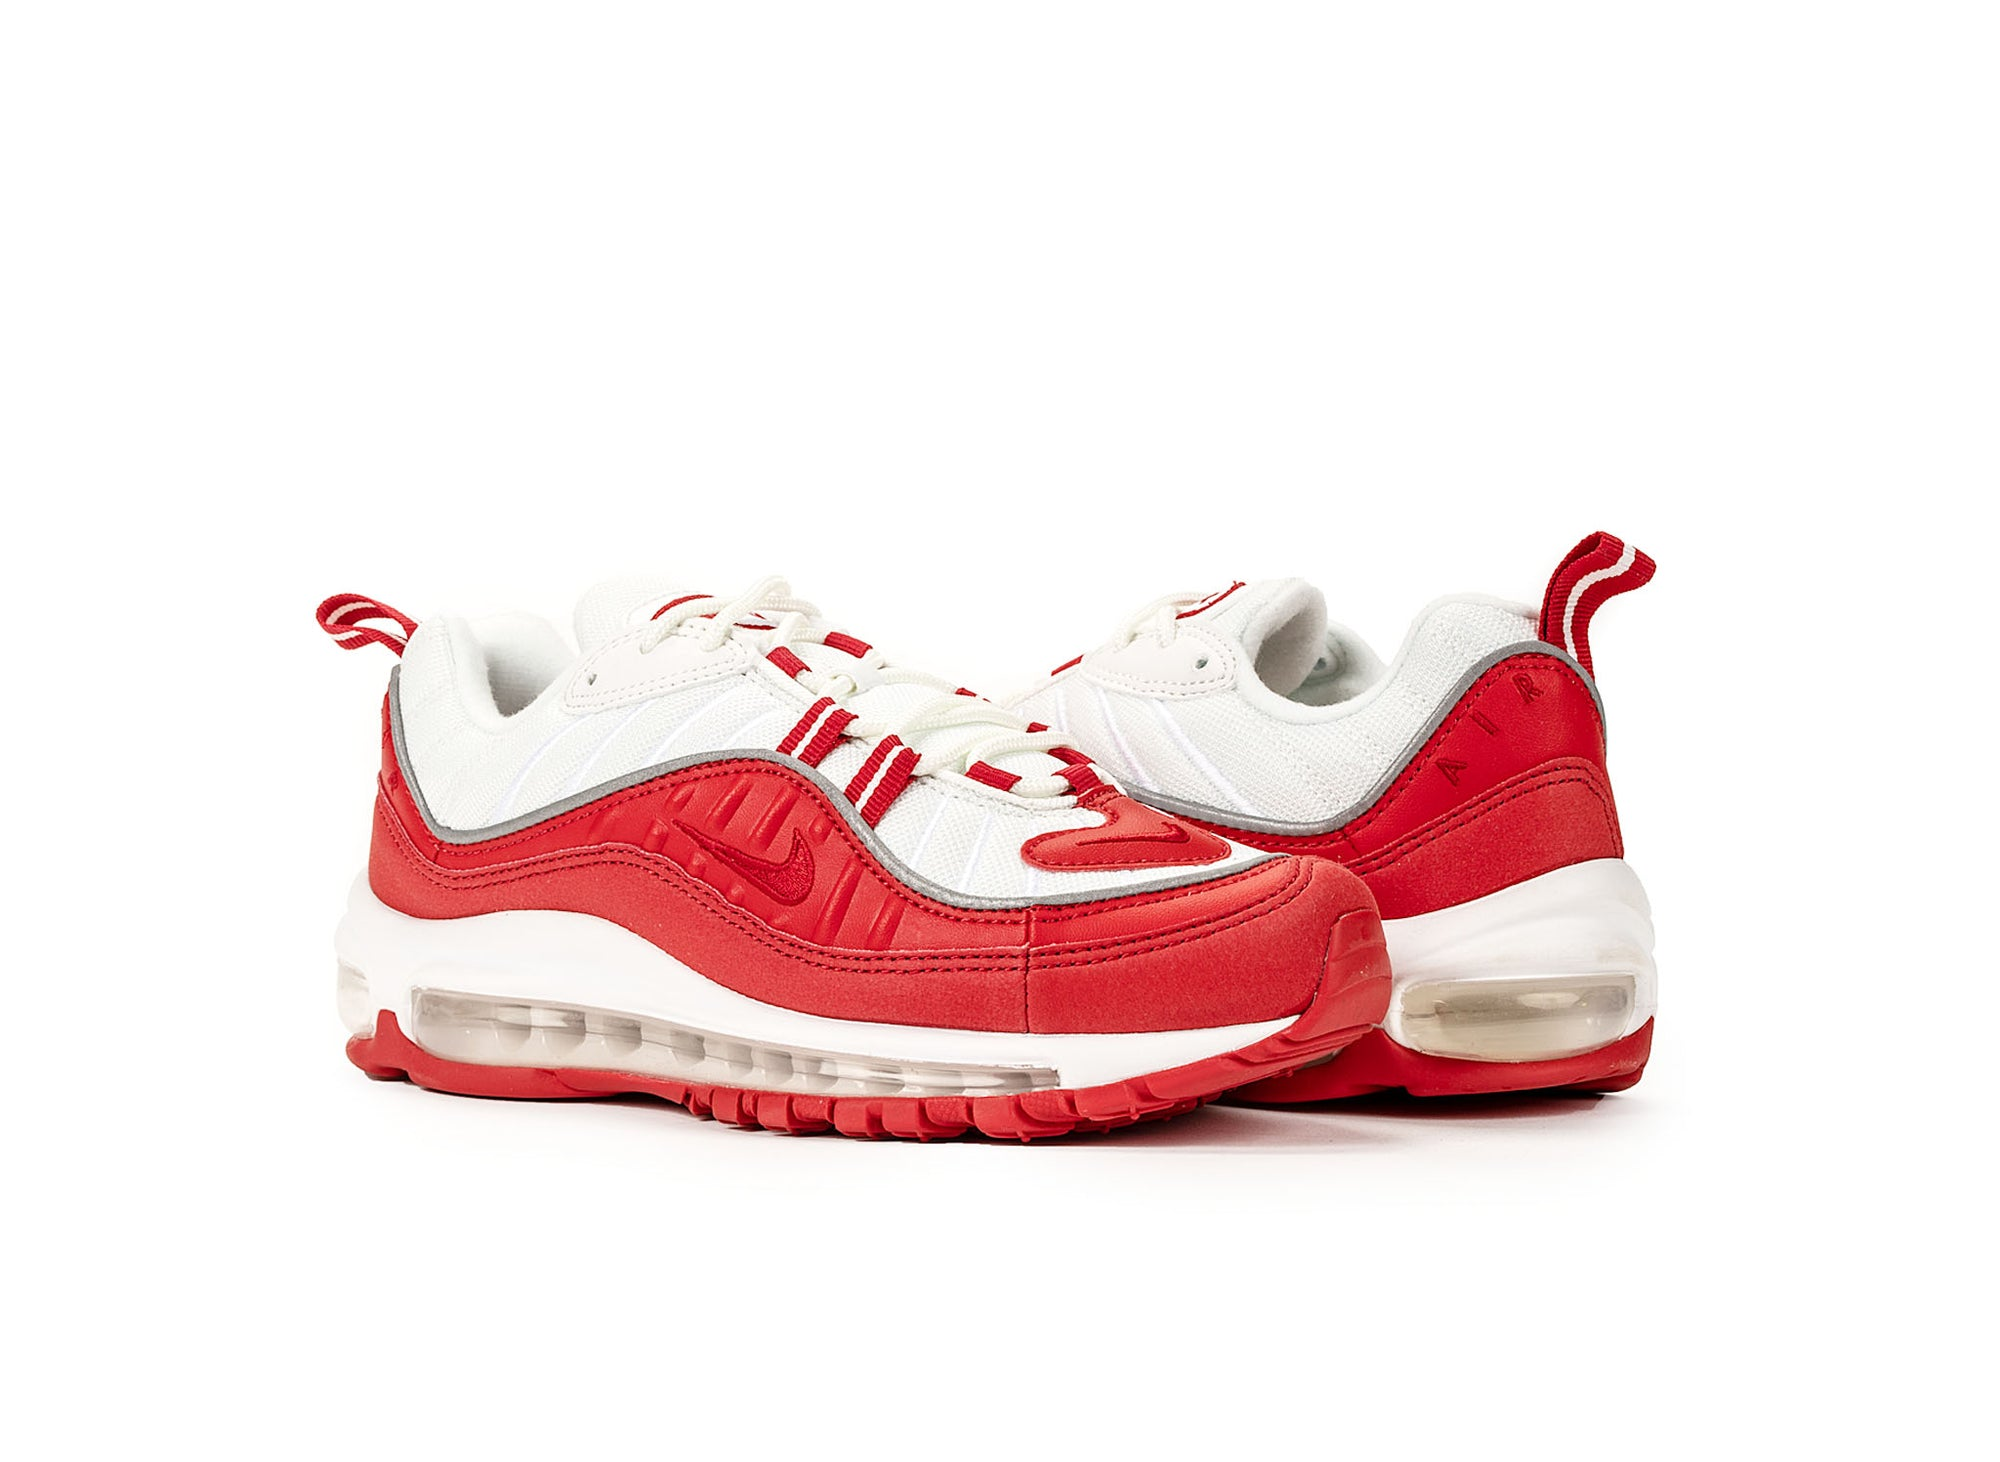 new style 03ccd 23a7d Nike Air Max 98 GS - University Red